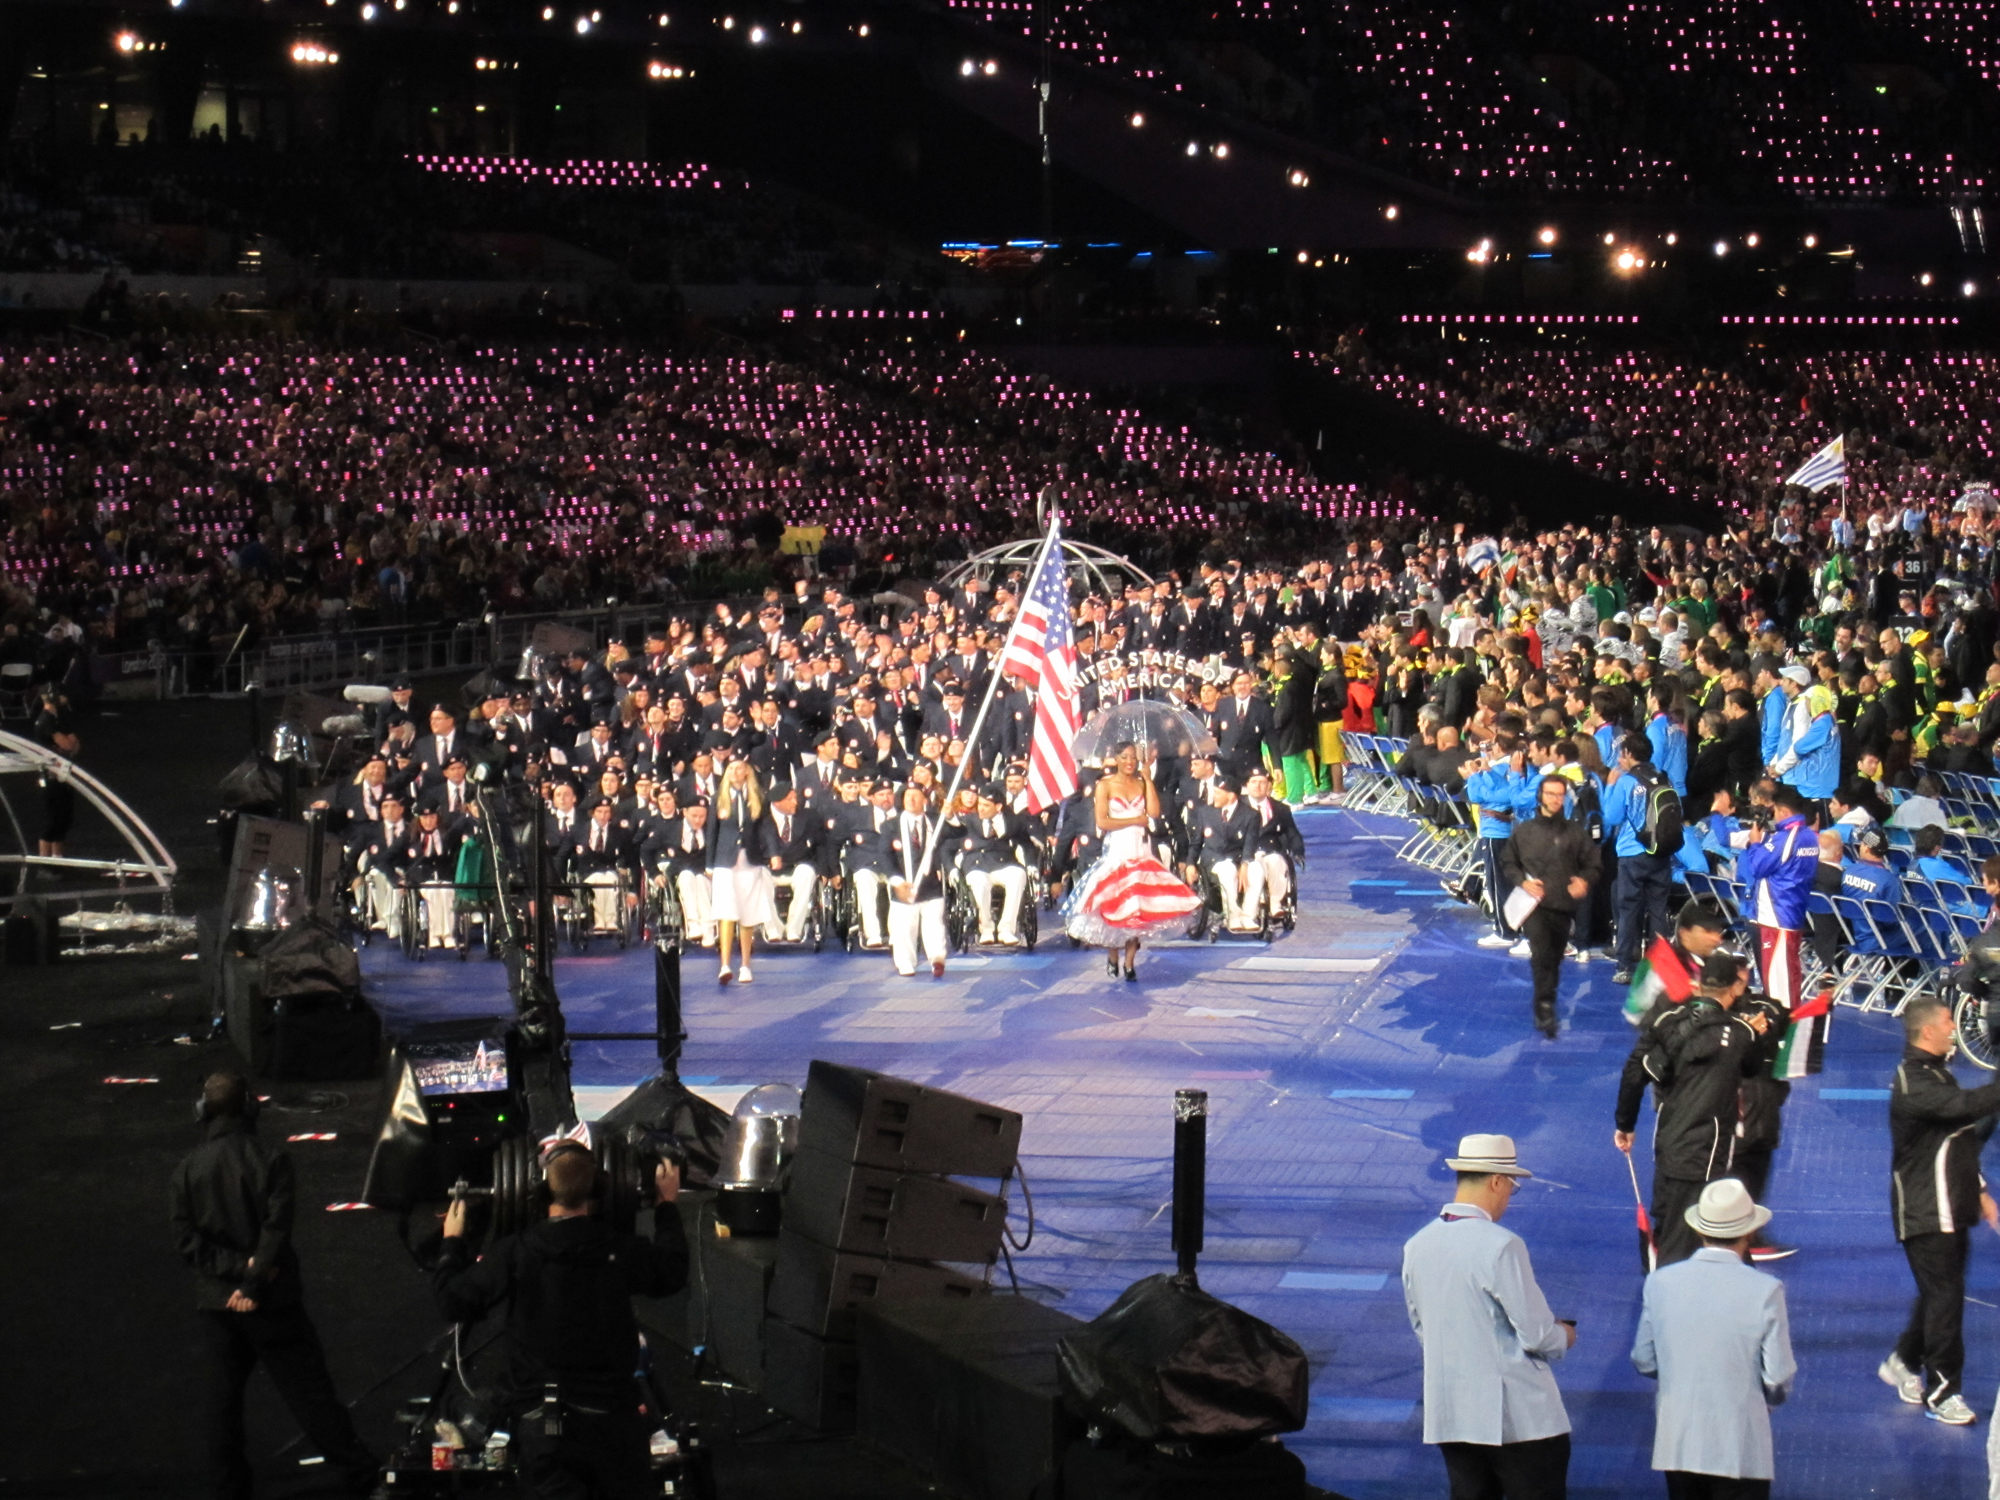 The closing ceremony for the 2012 Paralympic Games. (Photo by Jack Walter.)